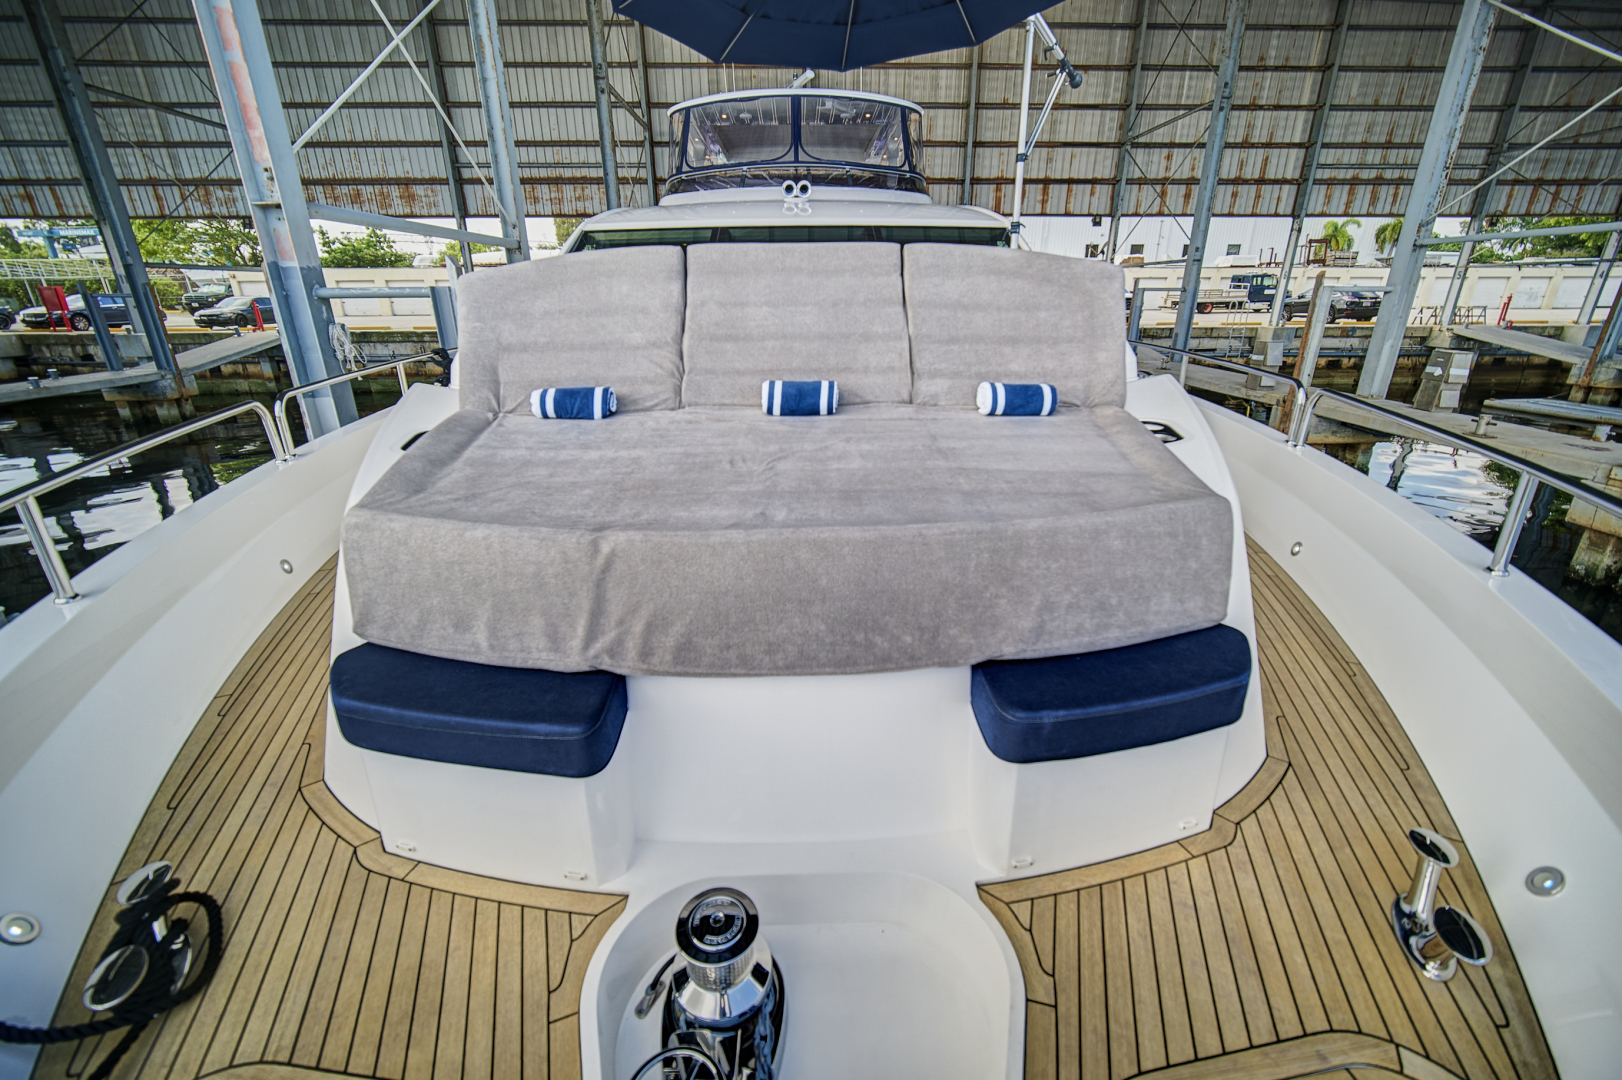 Sunseeker-86 Yacht 2019-Its Noon Somewhere Fort Lauderdale-Florida-United States-1556665 | Thumbnail